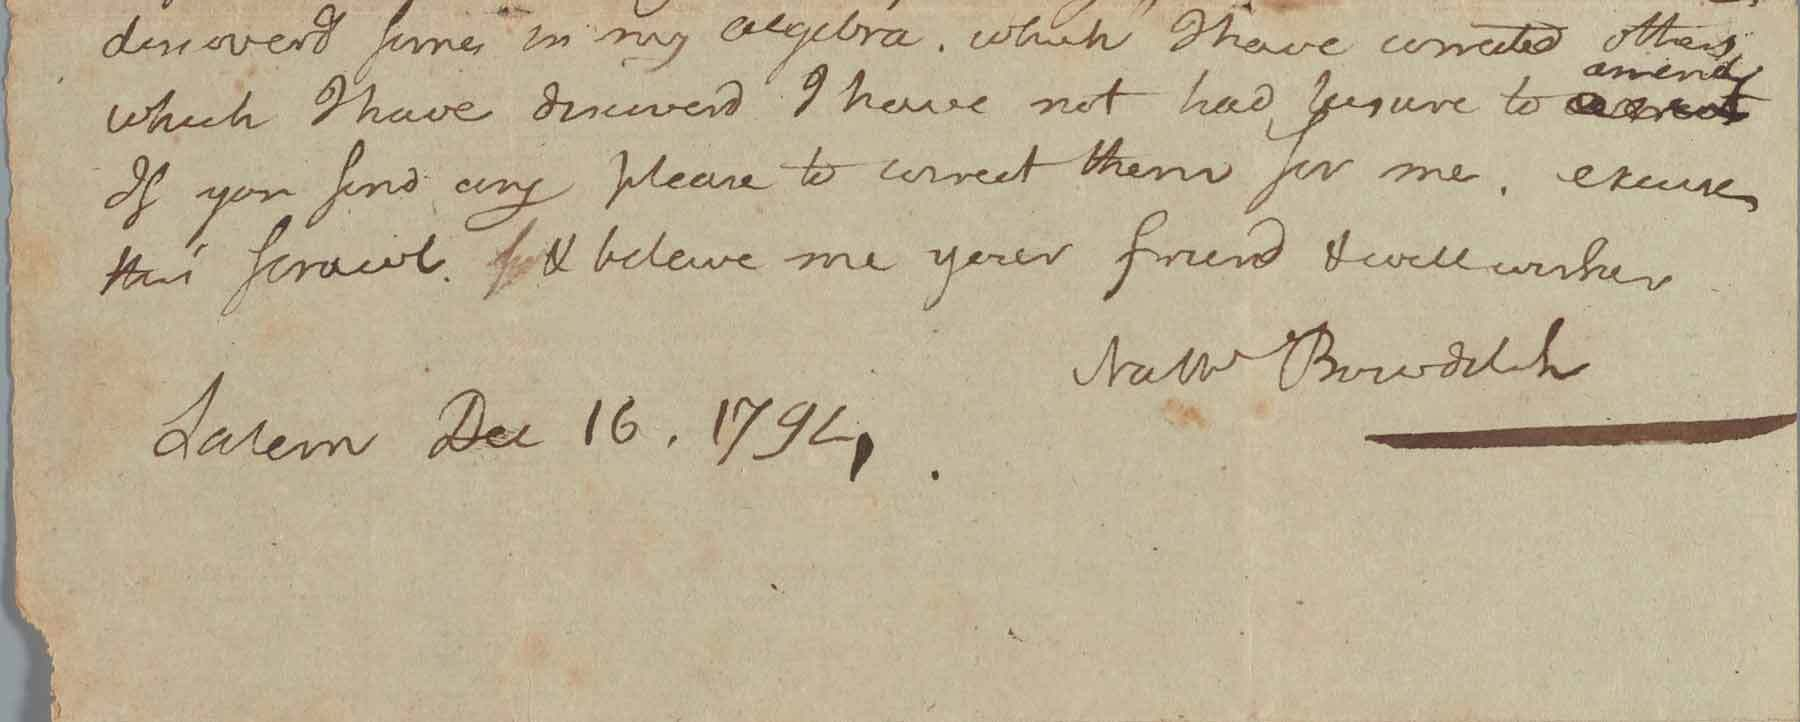 Nathaniel Bowditch, Letter to Moses Dorman of Boxford, Mass. (detail), Dec. 16, 1794, Phillips Library, MSS 3, box 1, folder 1, Purchase, funded by Jonathan Loring, 2021.